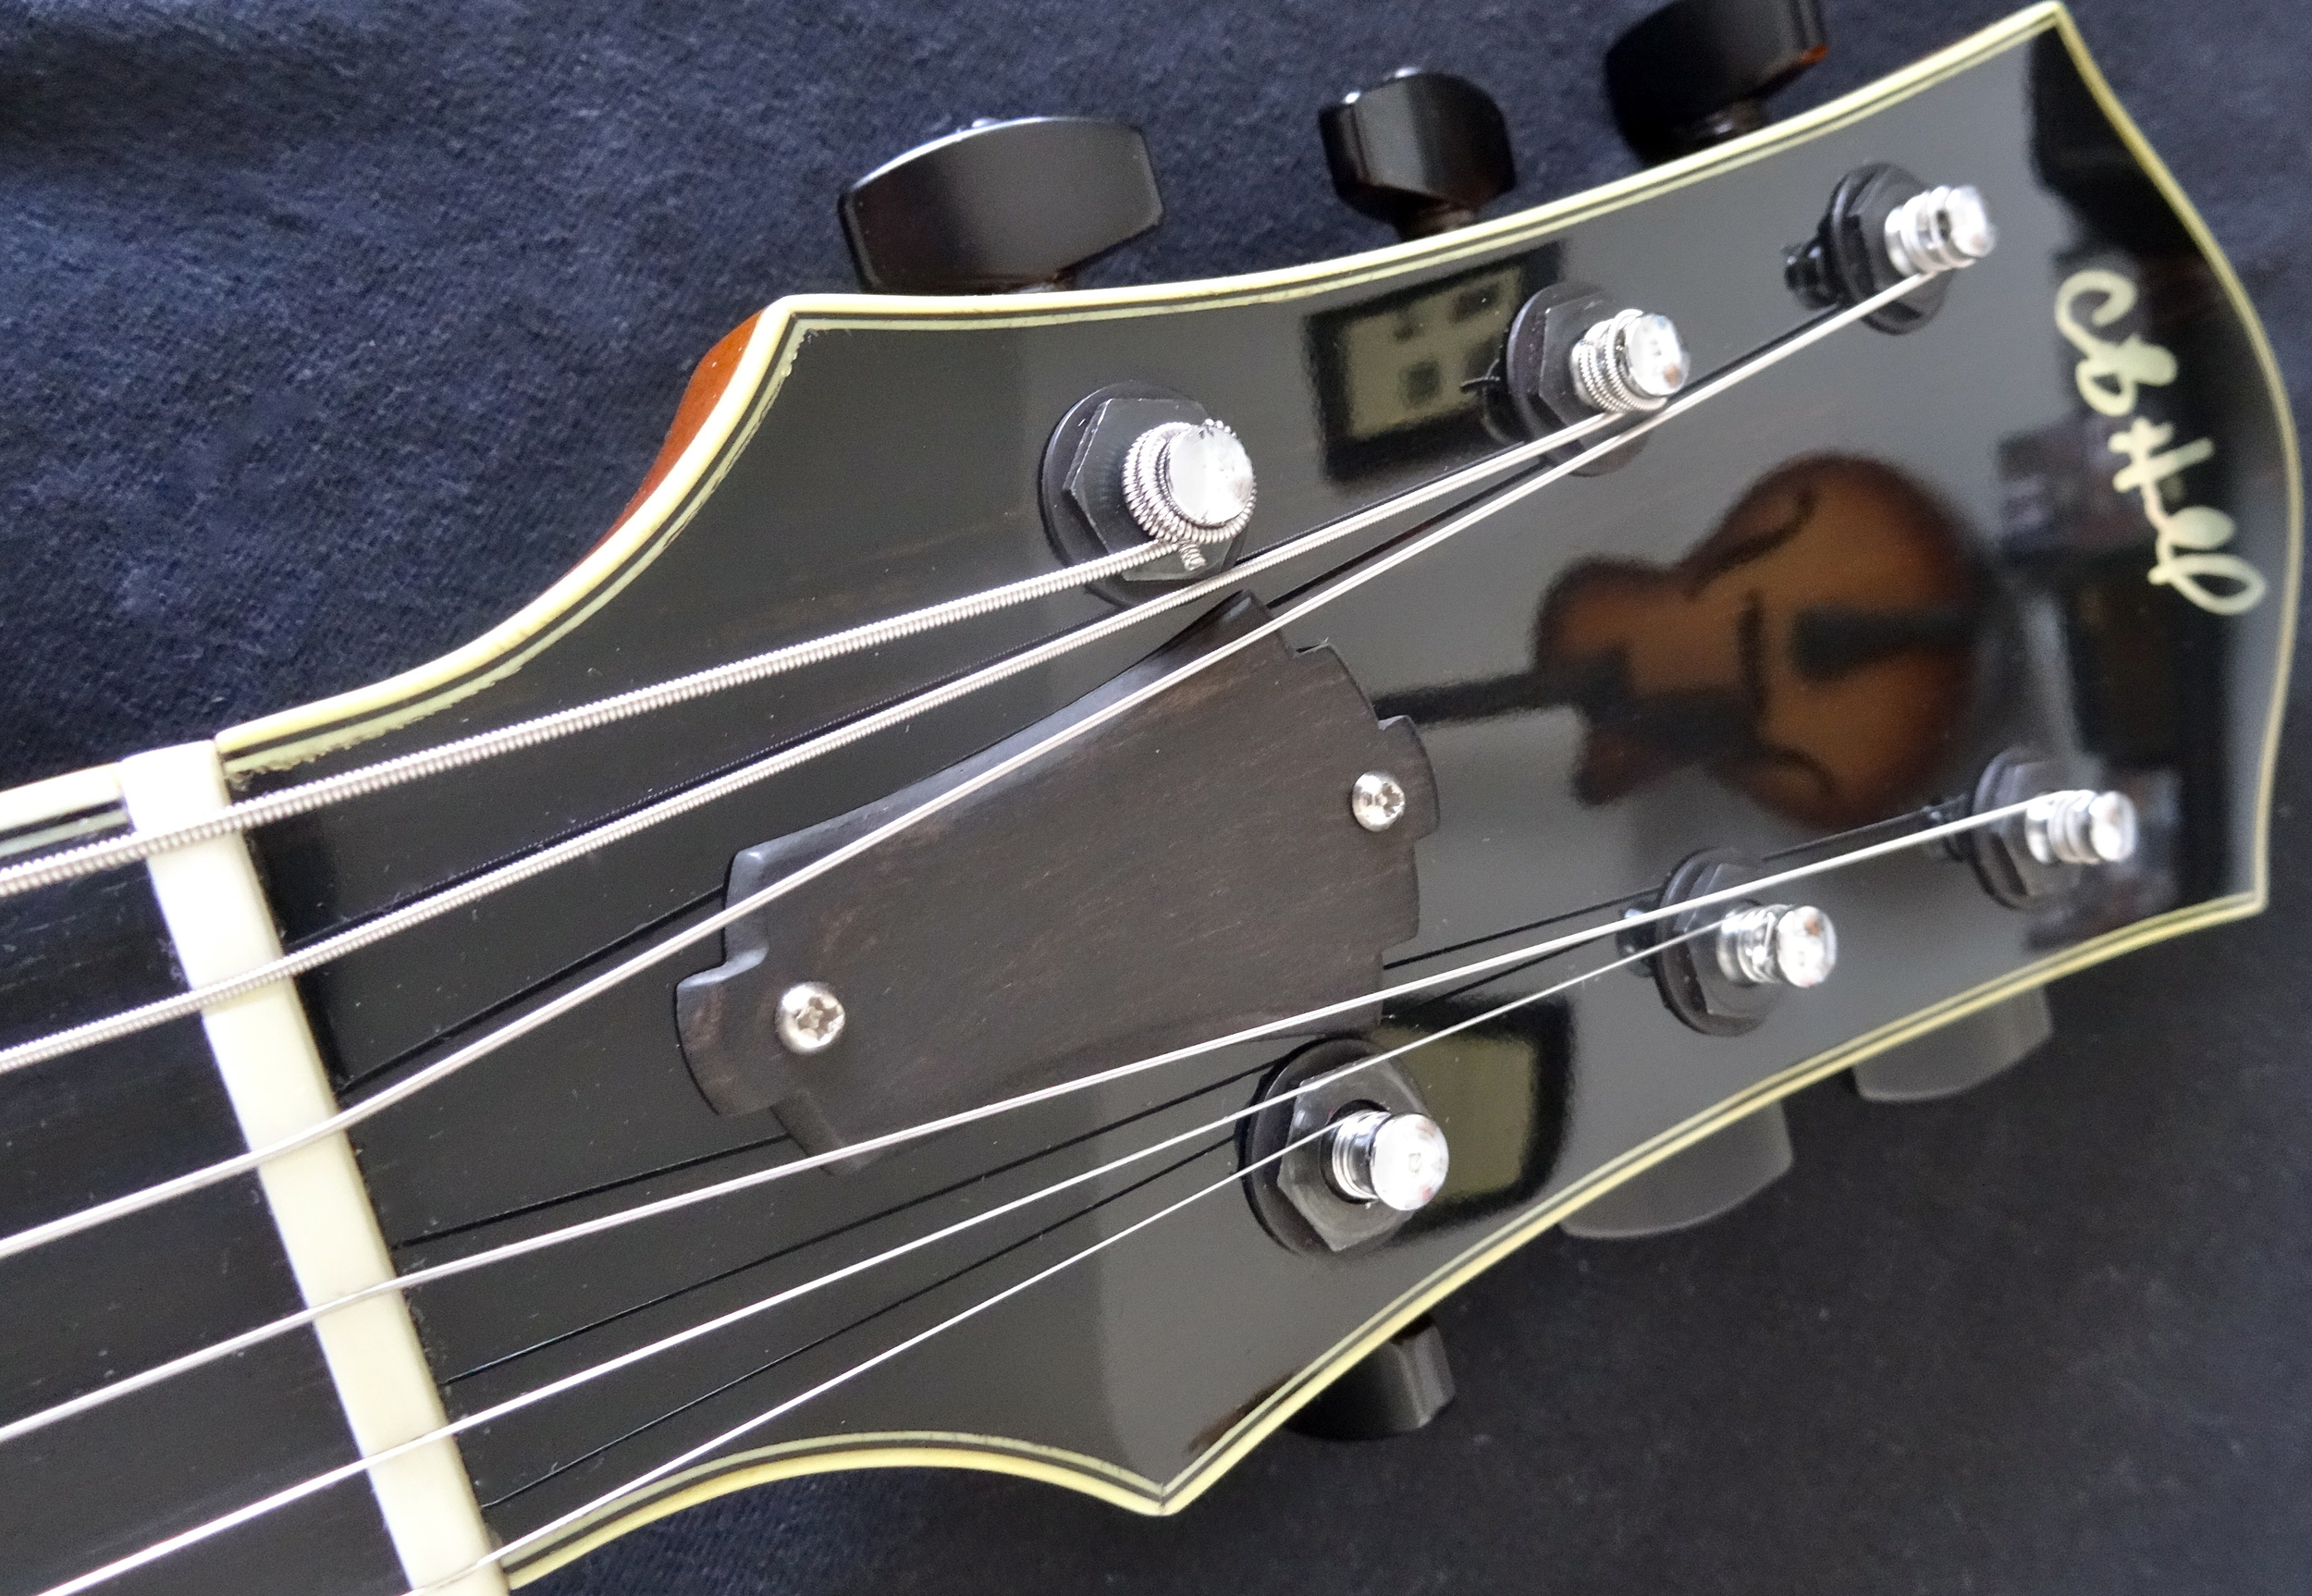 The headstock reflects well on CB's craftsmanship